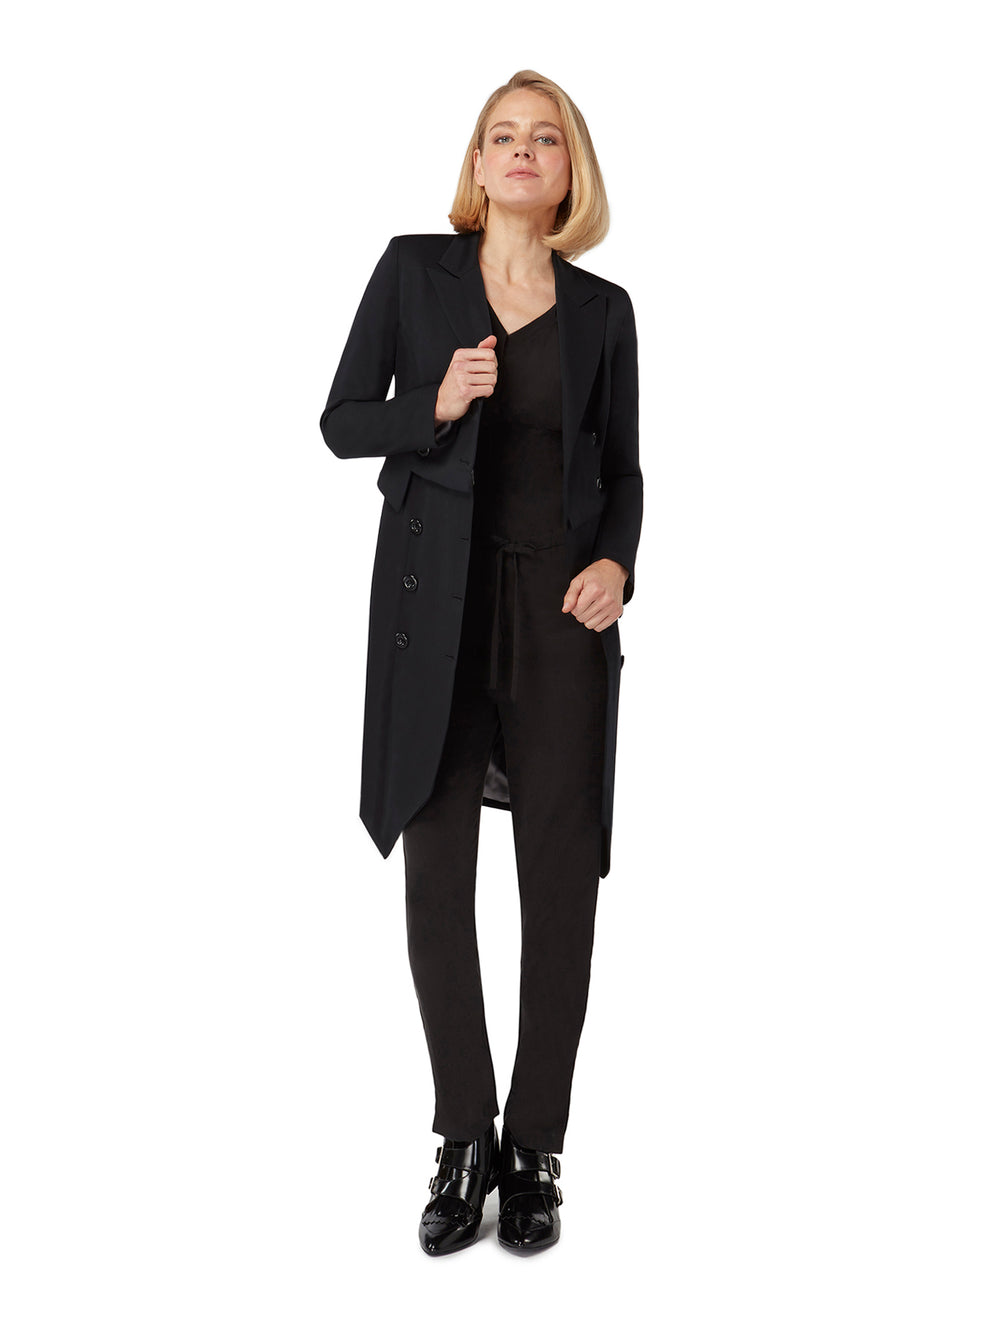 J027L _ ABACUS _ Multiway Suiting Coat-Dress